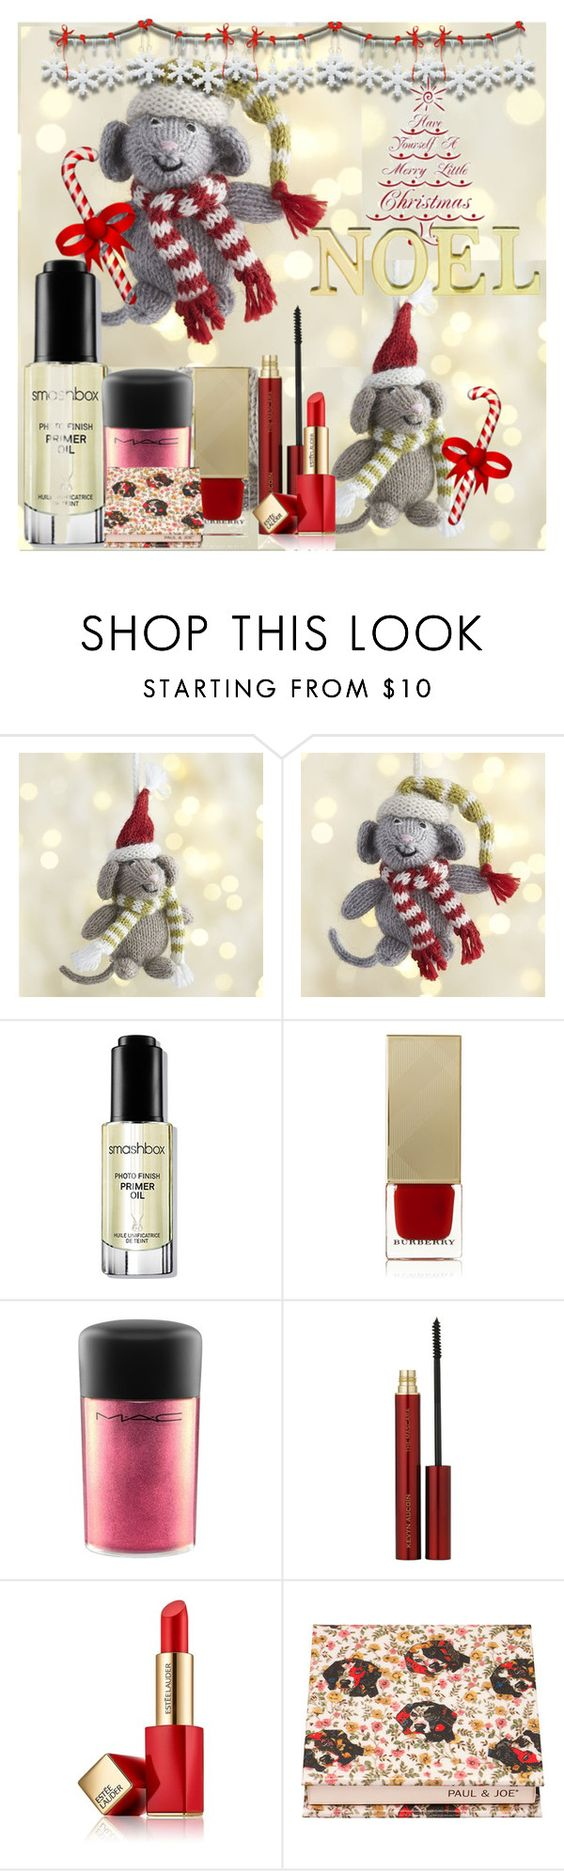 """Cute Christmas Beauty"" by frenchfriesblackmg ❤ liked on Polyvore featuring beauty, Crate and Barrel, Smashbox, Burberry, MAC Cosmetics, Laura Ashley, Kevyn Aucoin, Estée Lauder and Paul & Joe Beaute"